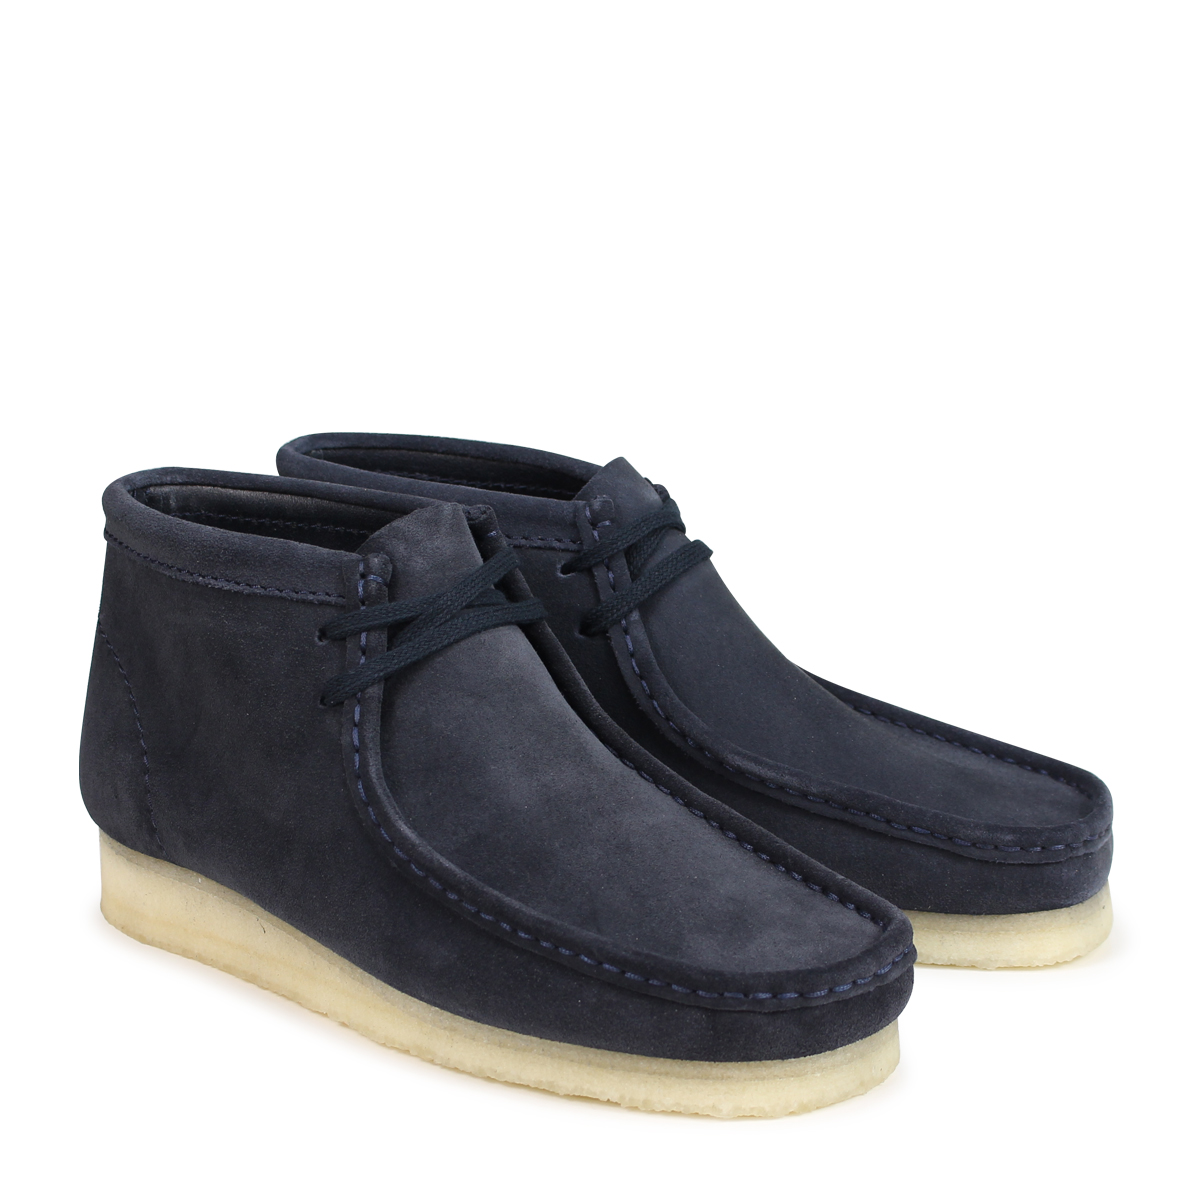 26135225 Clarks WALLABEE BOOT kulaki wallaby boots men dark blue [load planned Shinnyu load in reservation product 918 containing] [189]